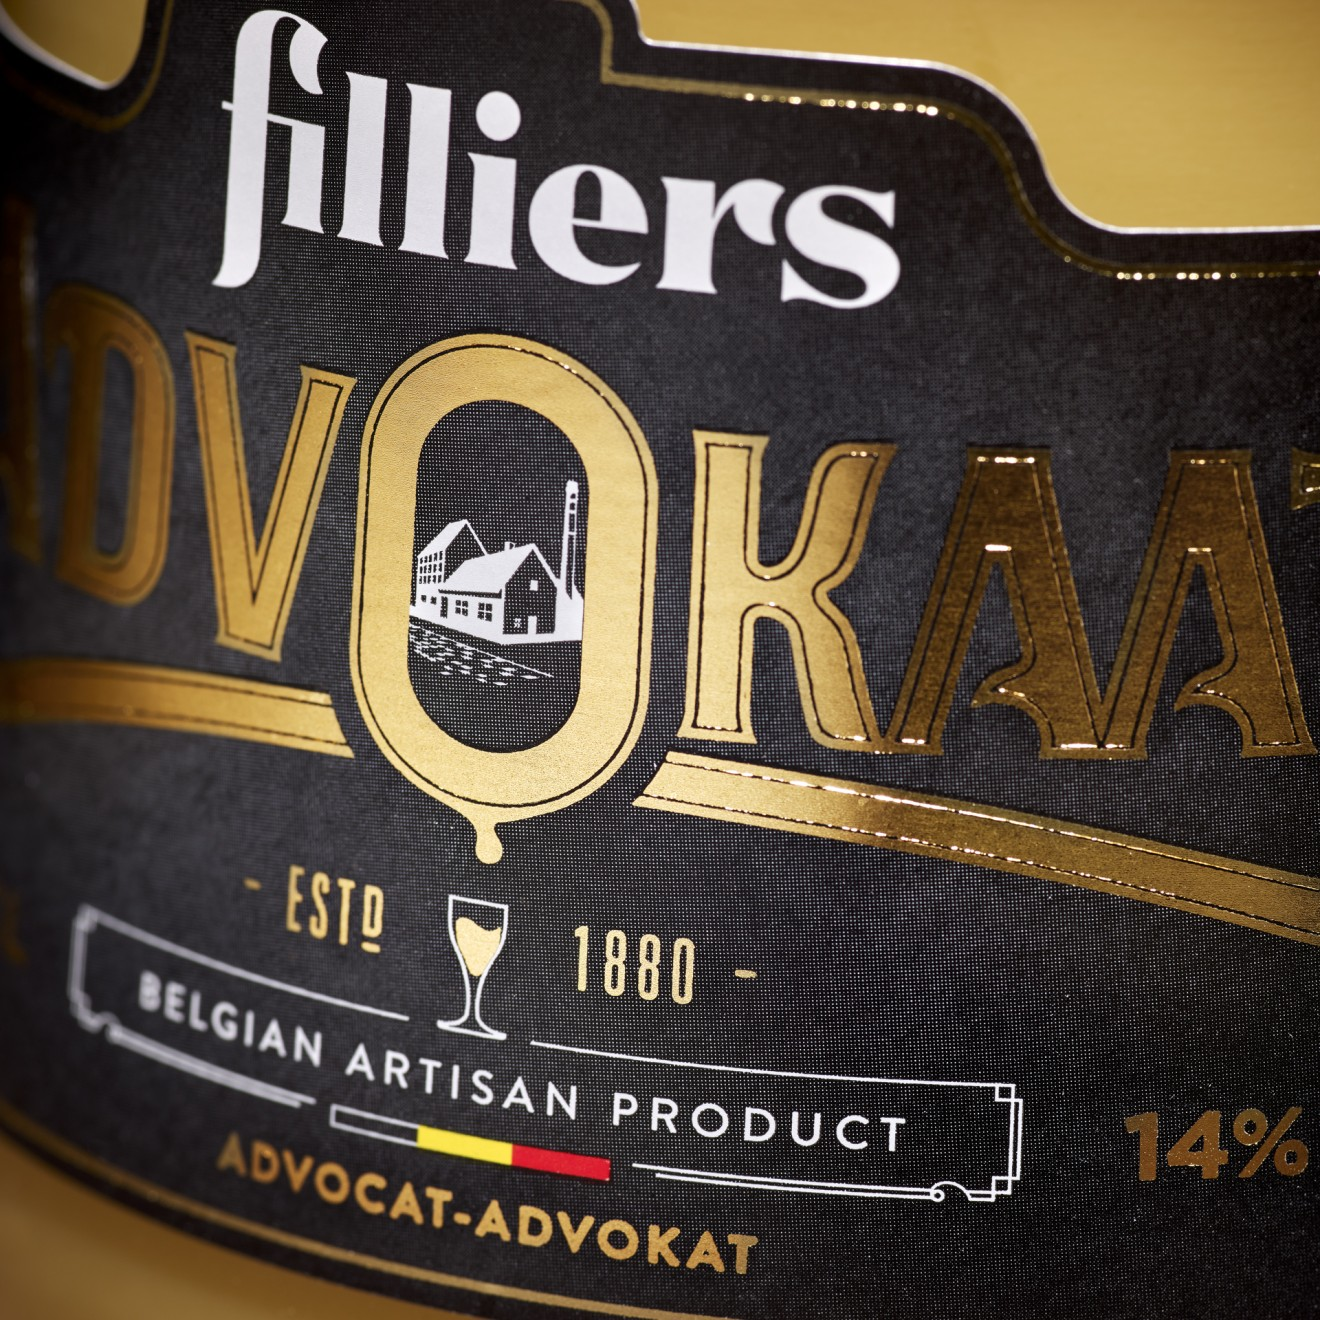 Quatre Mains package design - gold foil, distillery